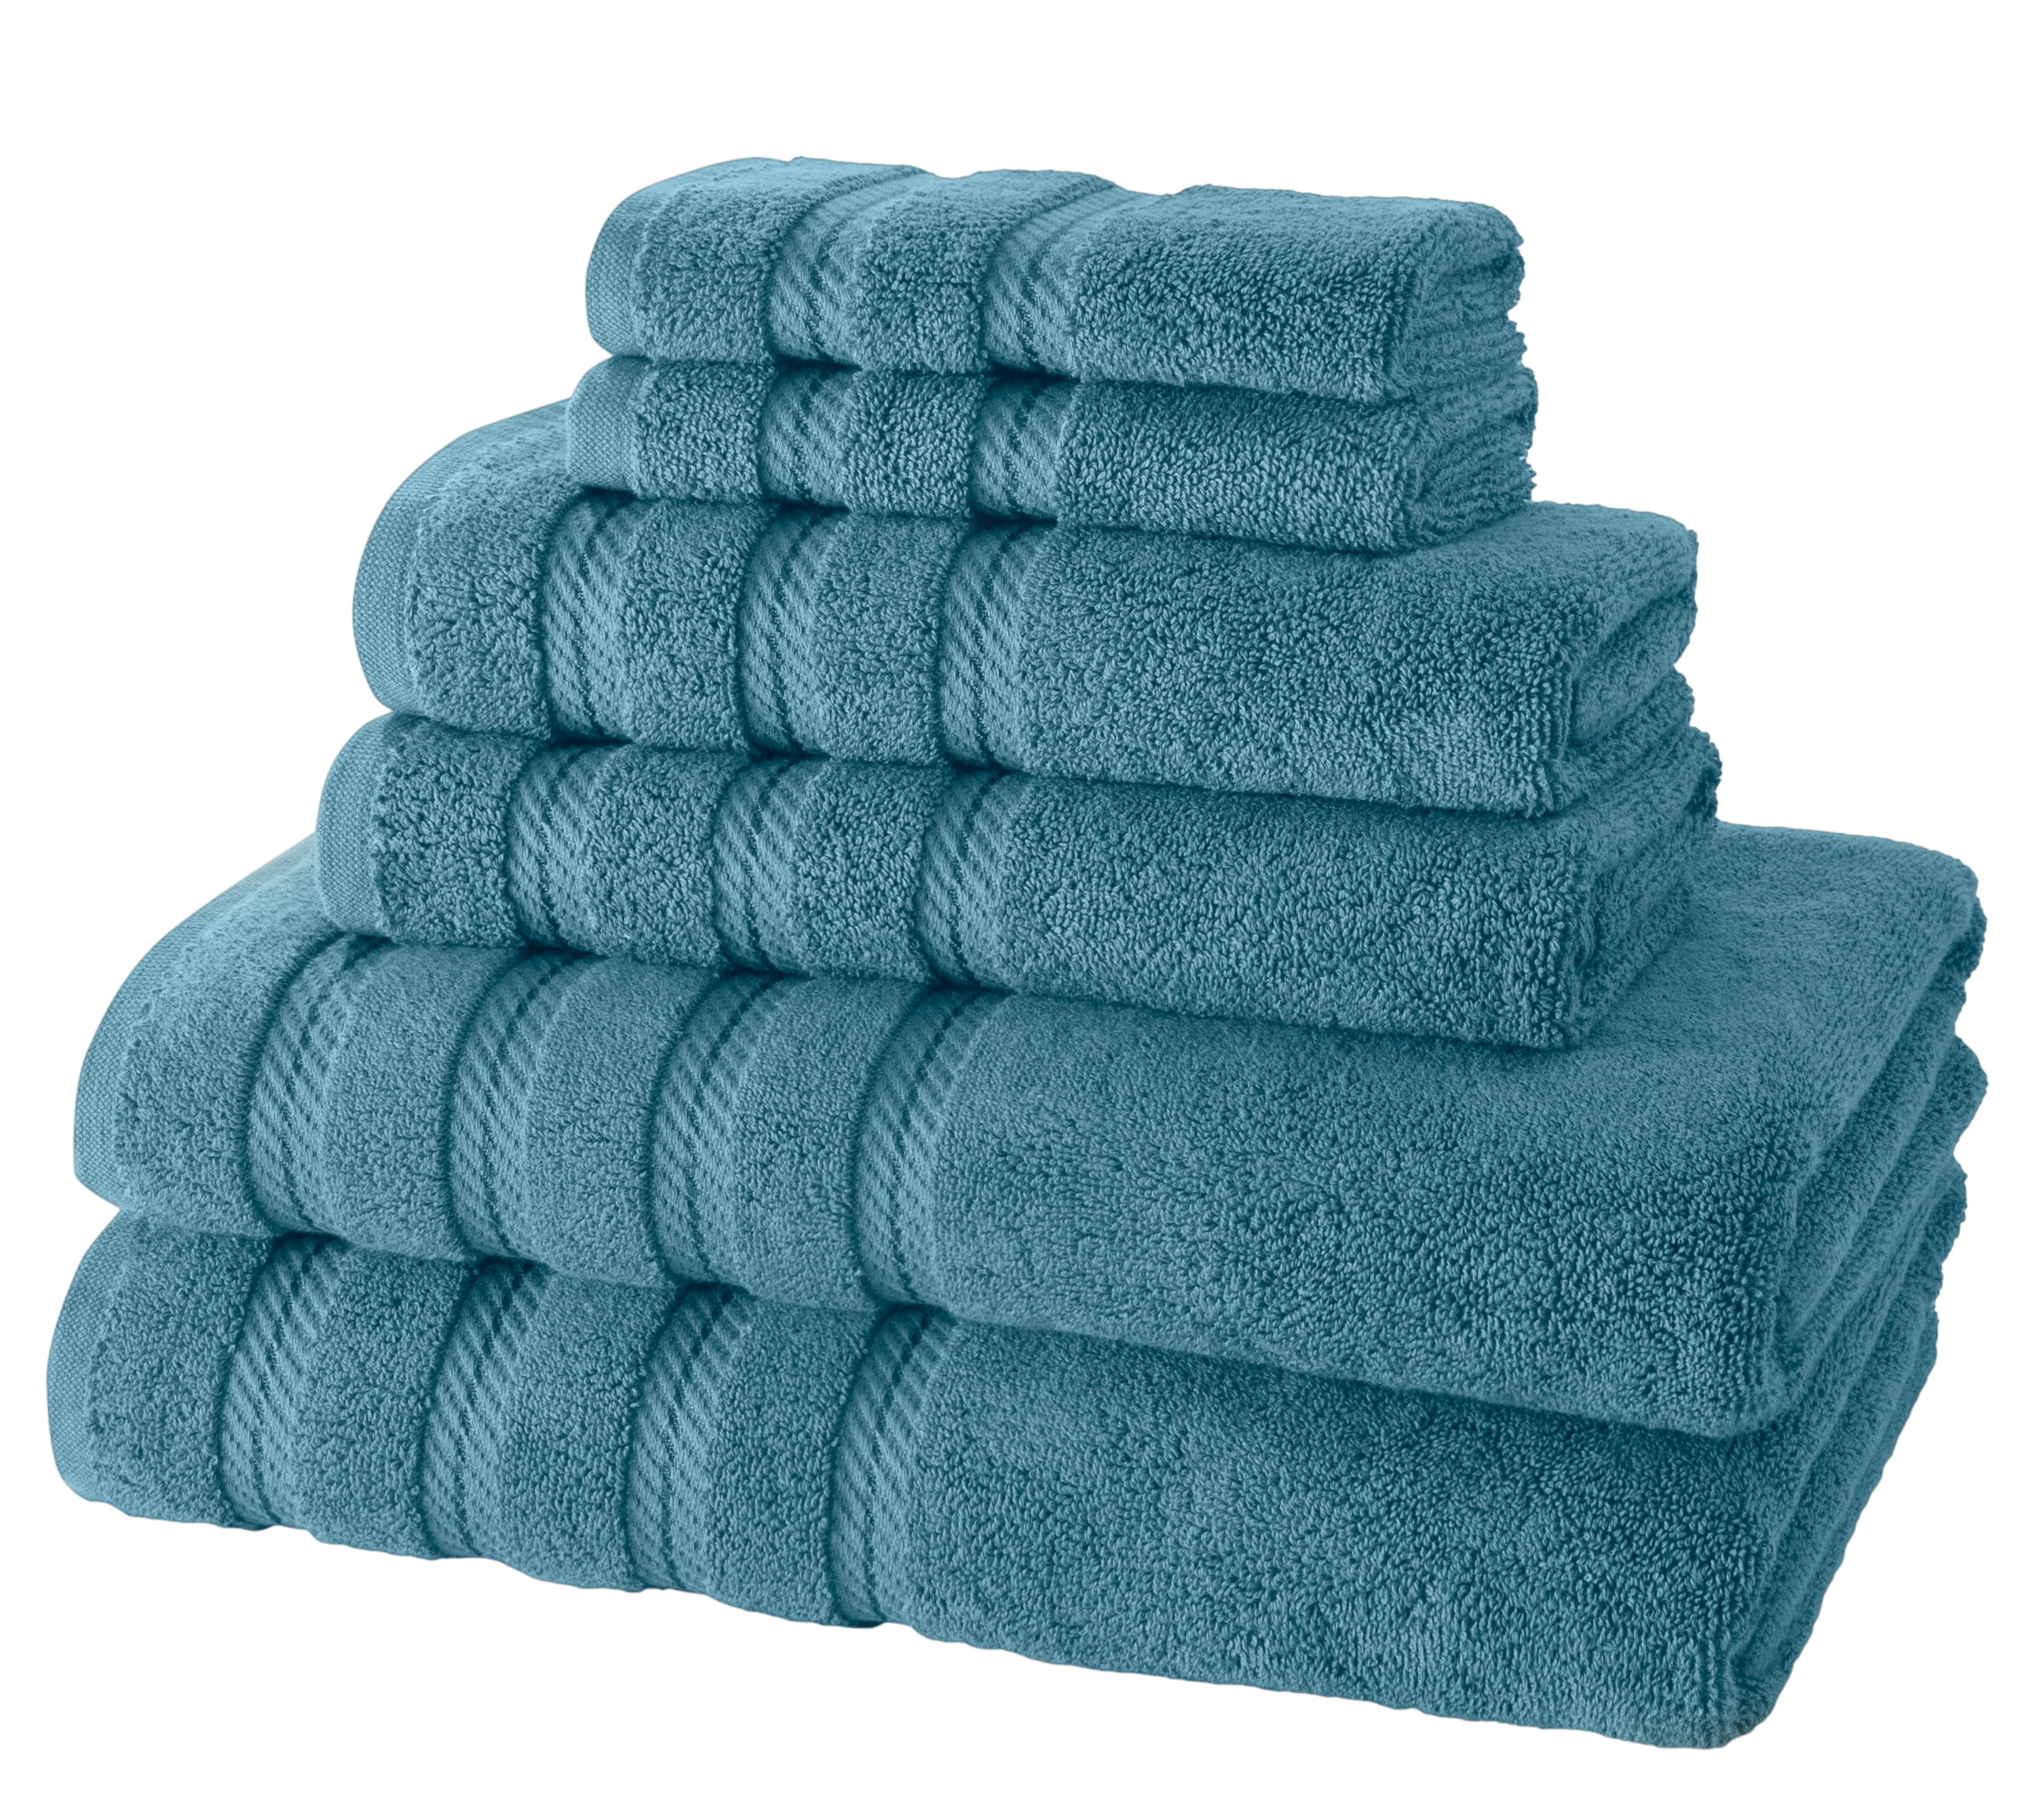 Antalya Turkish Cotton Towel Set of 6 (10 Sets) Case Pack